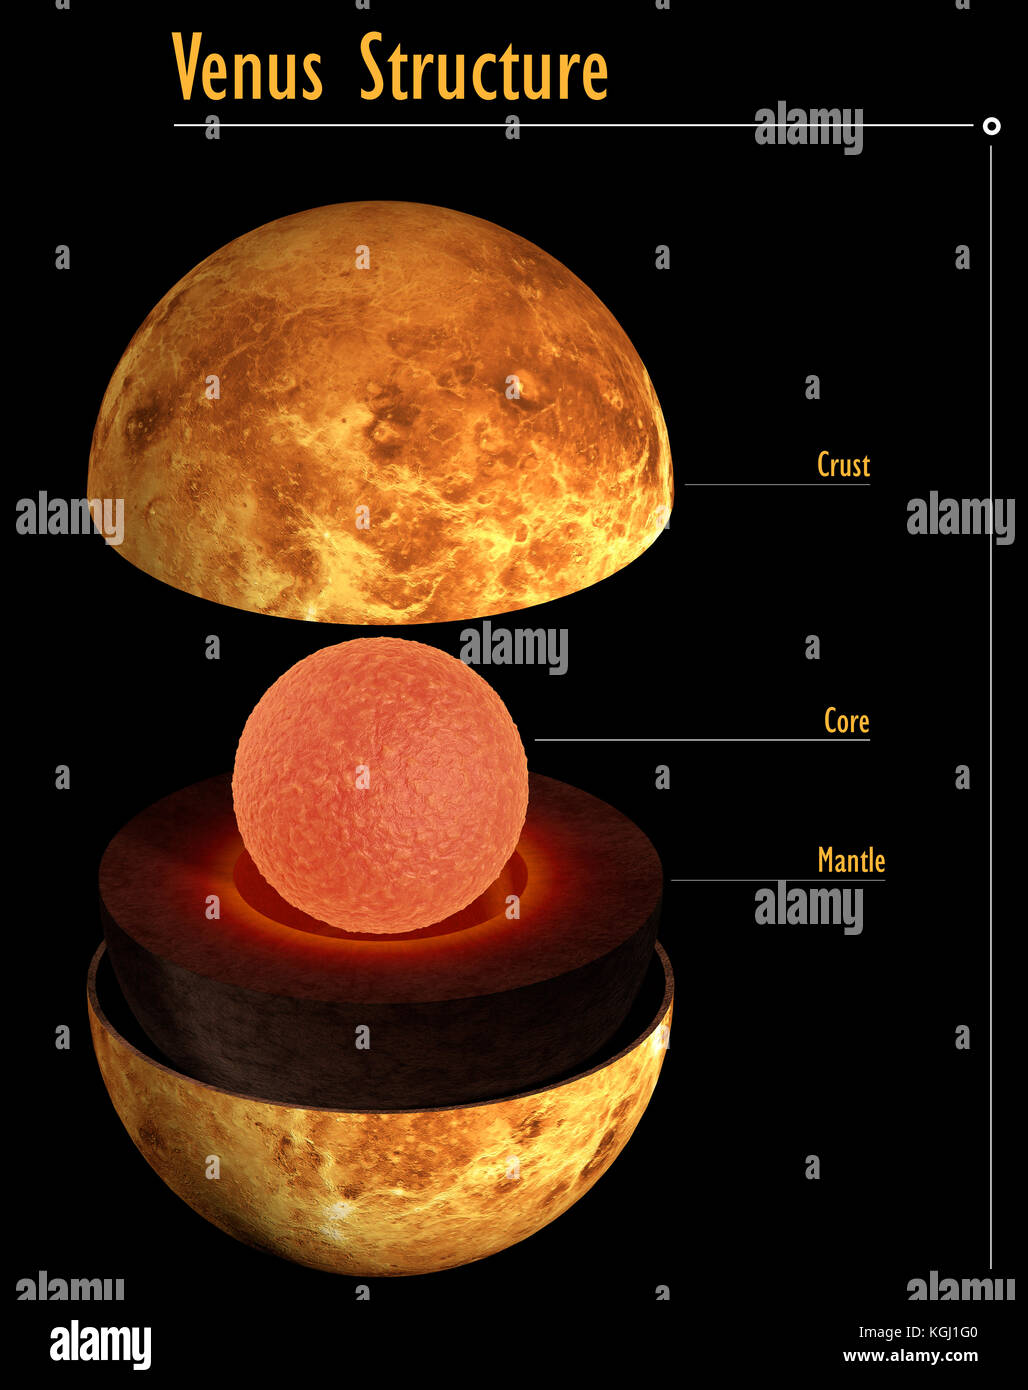 This Image Represents The Internal Structure Of The Venus